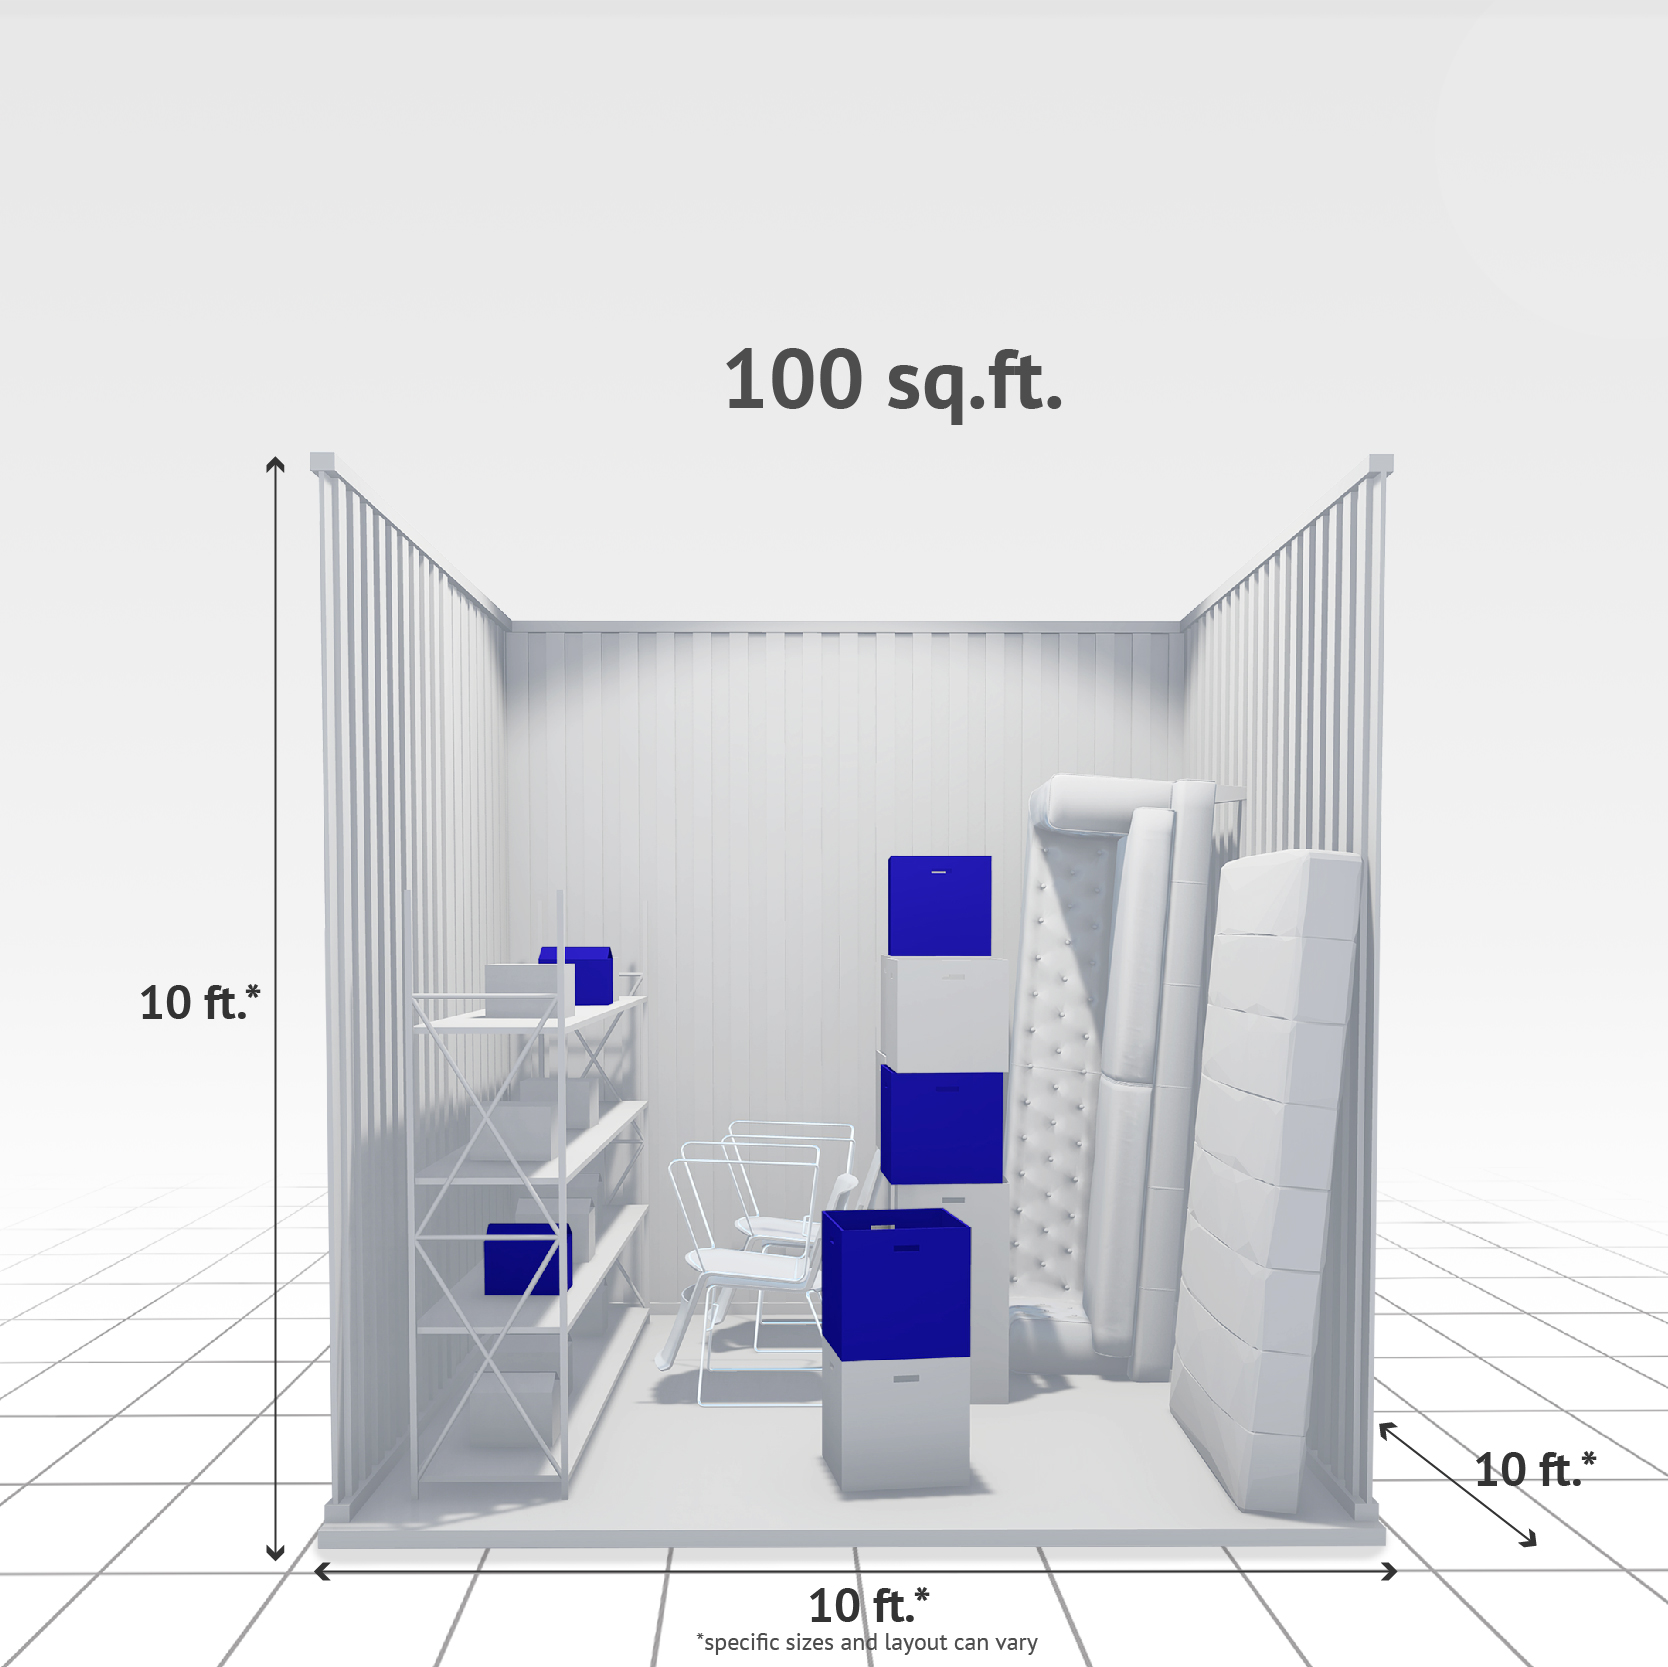 100 sq ft Internal Storage Unit